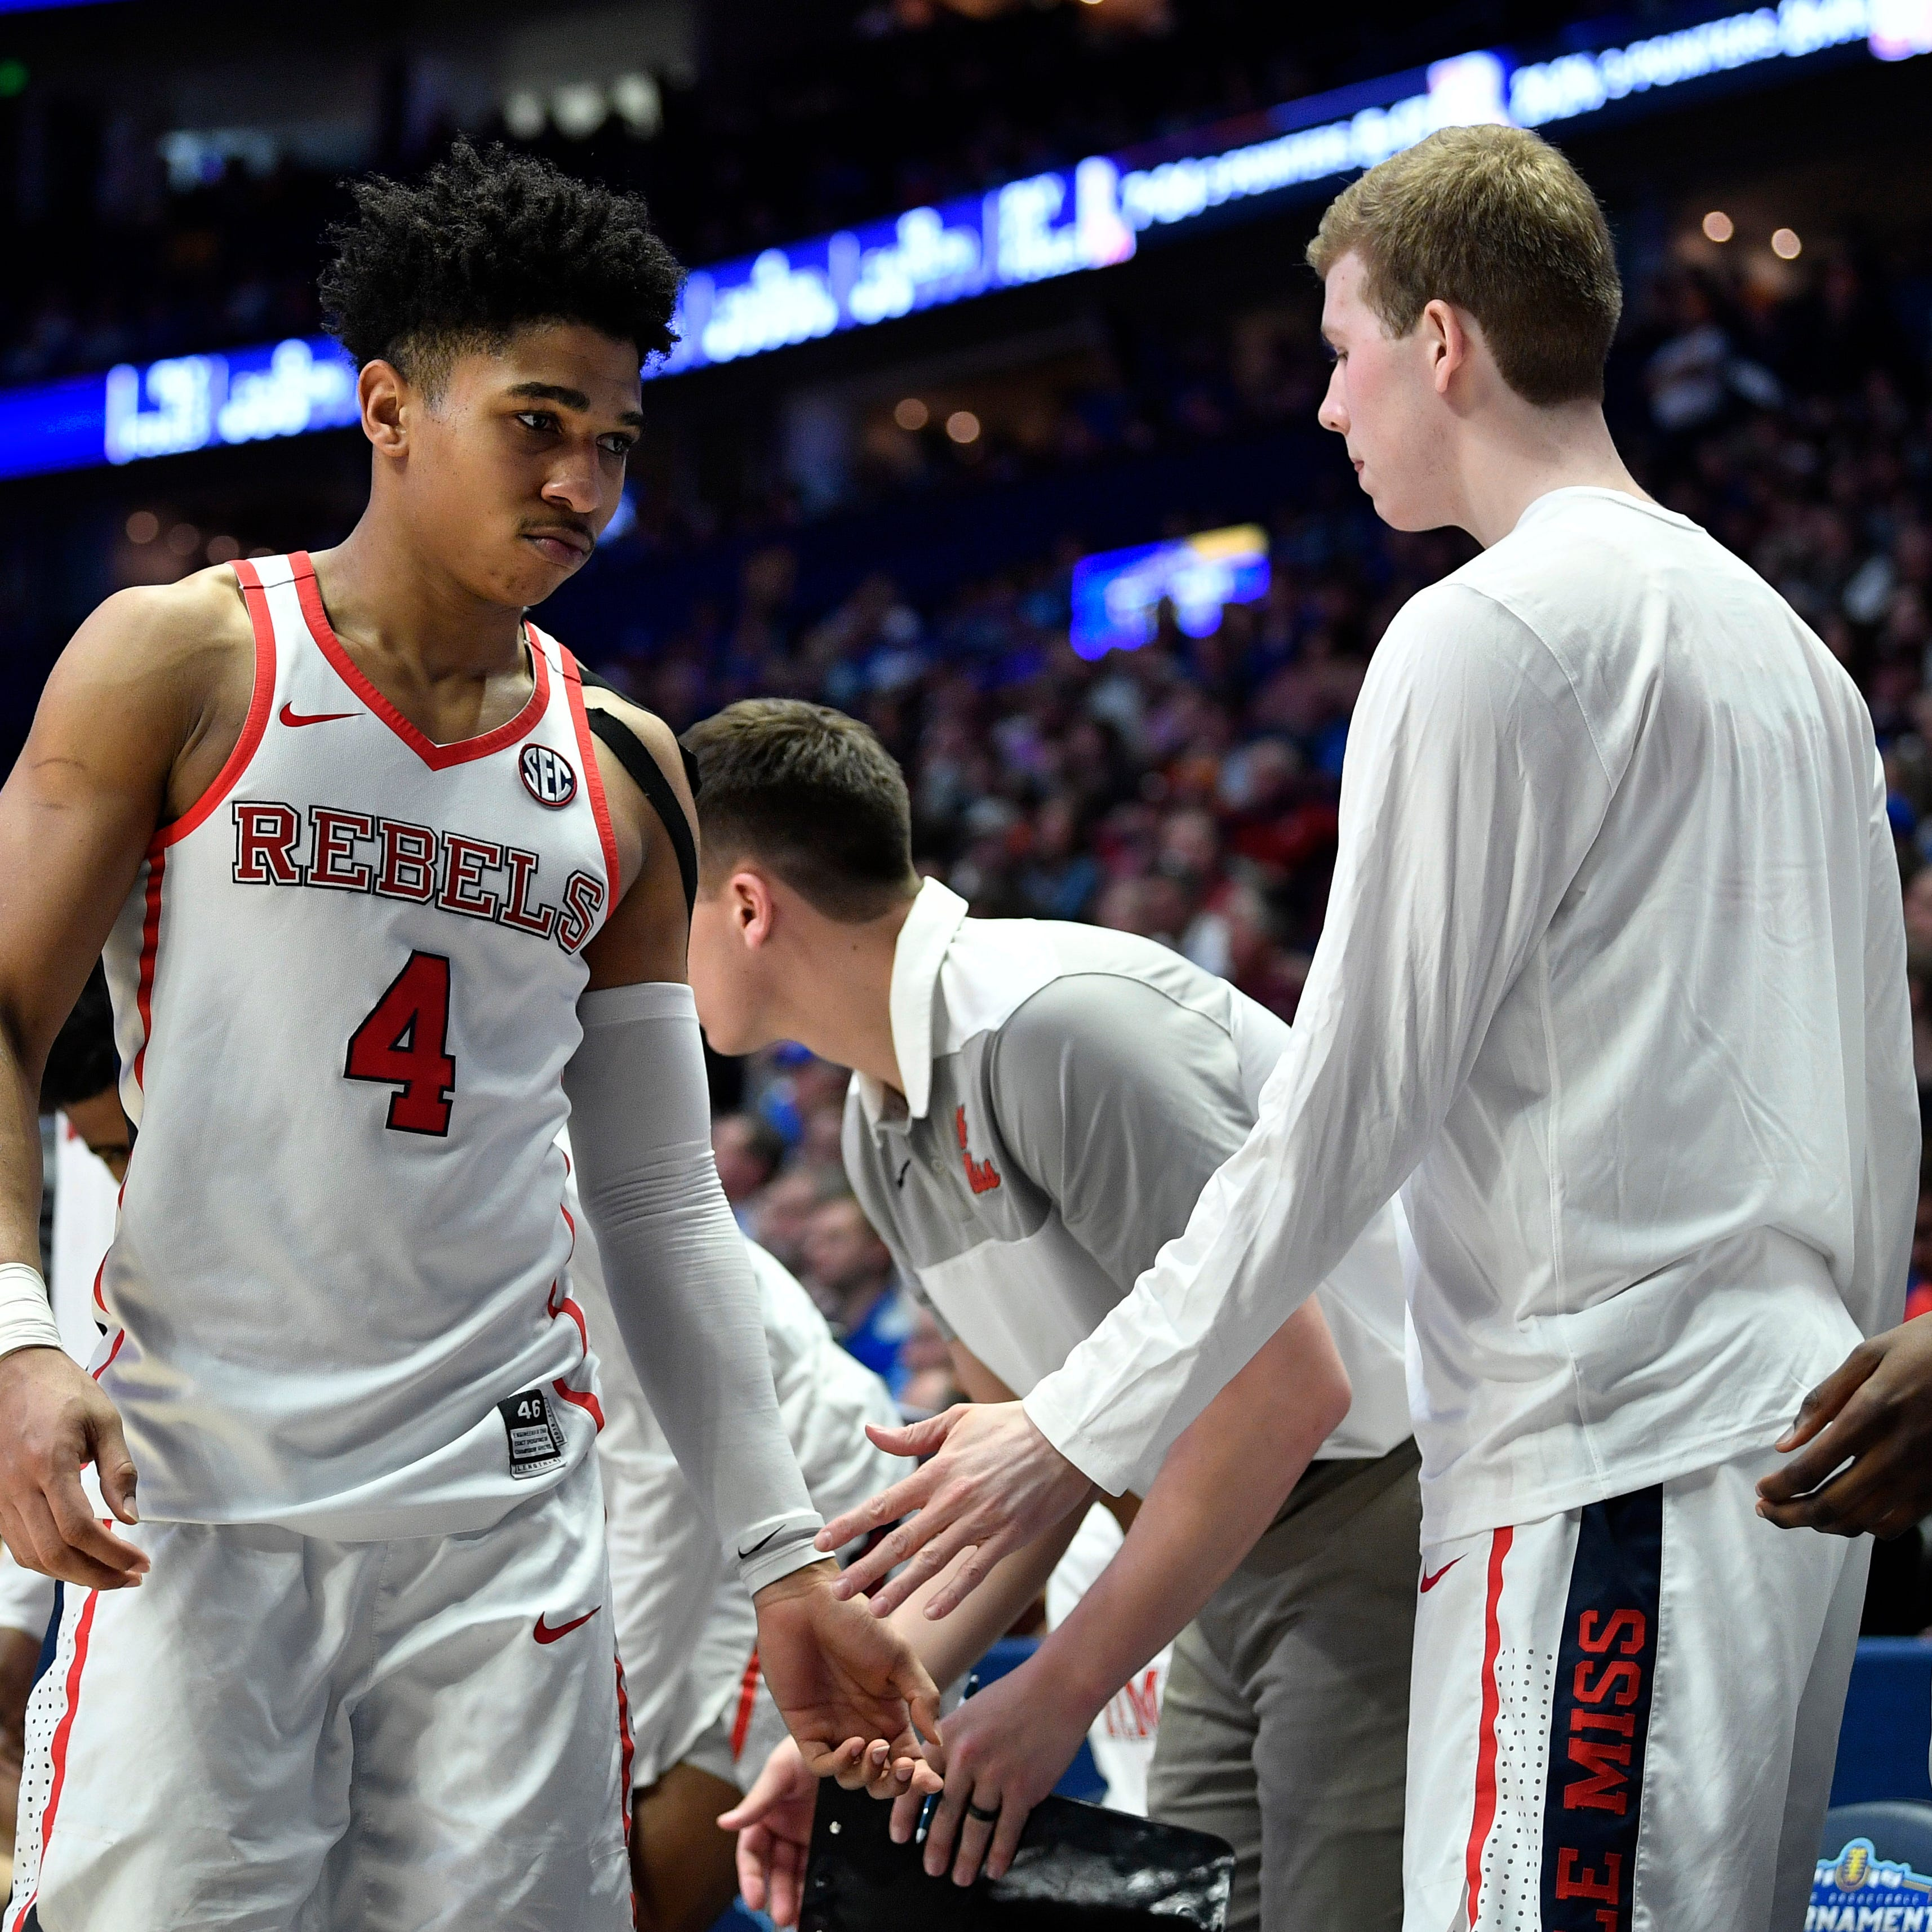 Ole Miss in the Final Four? Here's the Rebels' potential path to Minneapolis